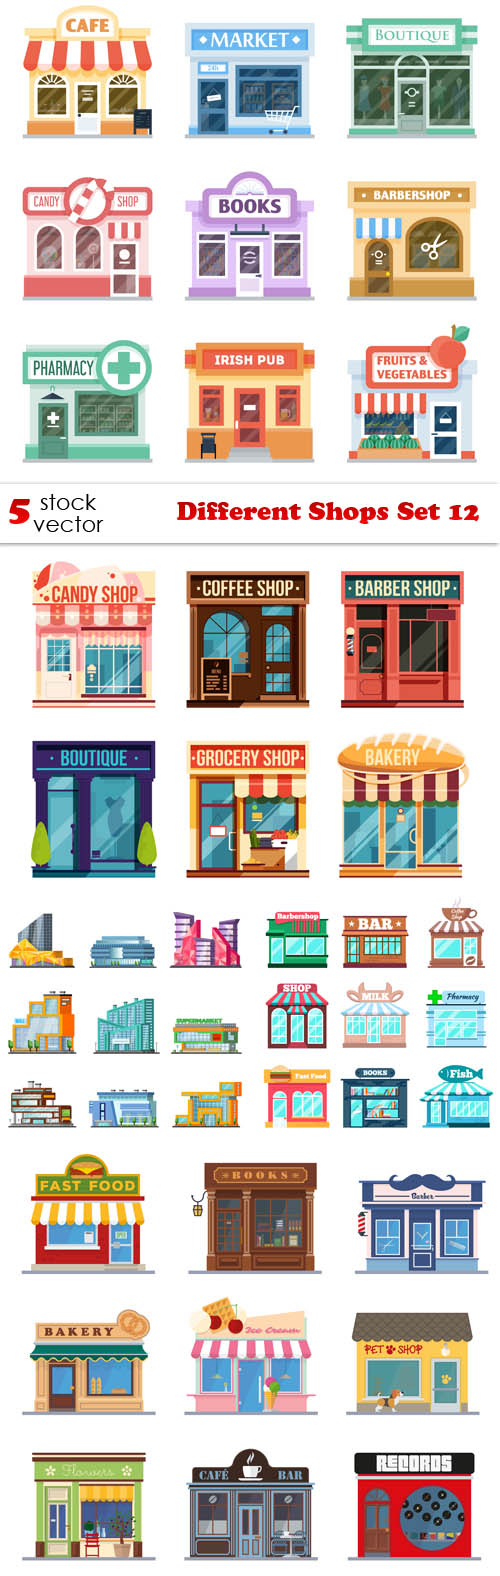 Vectors.Different.Shops.Set.12